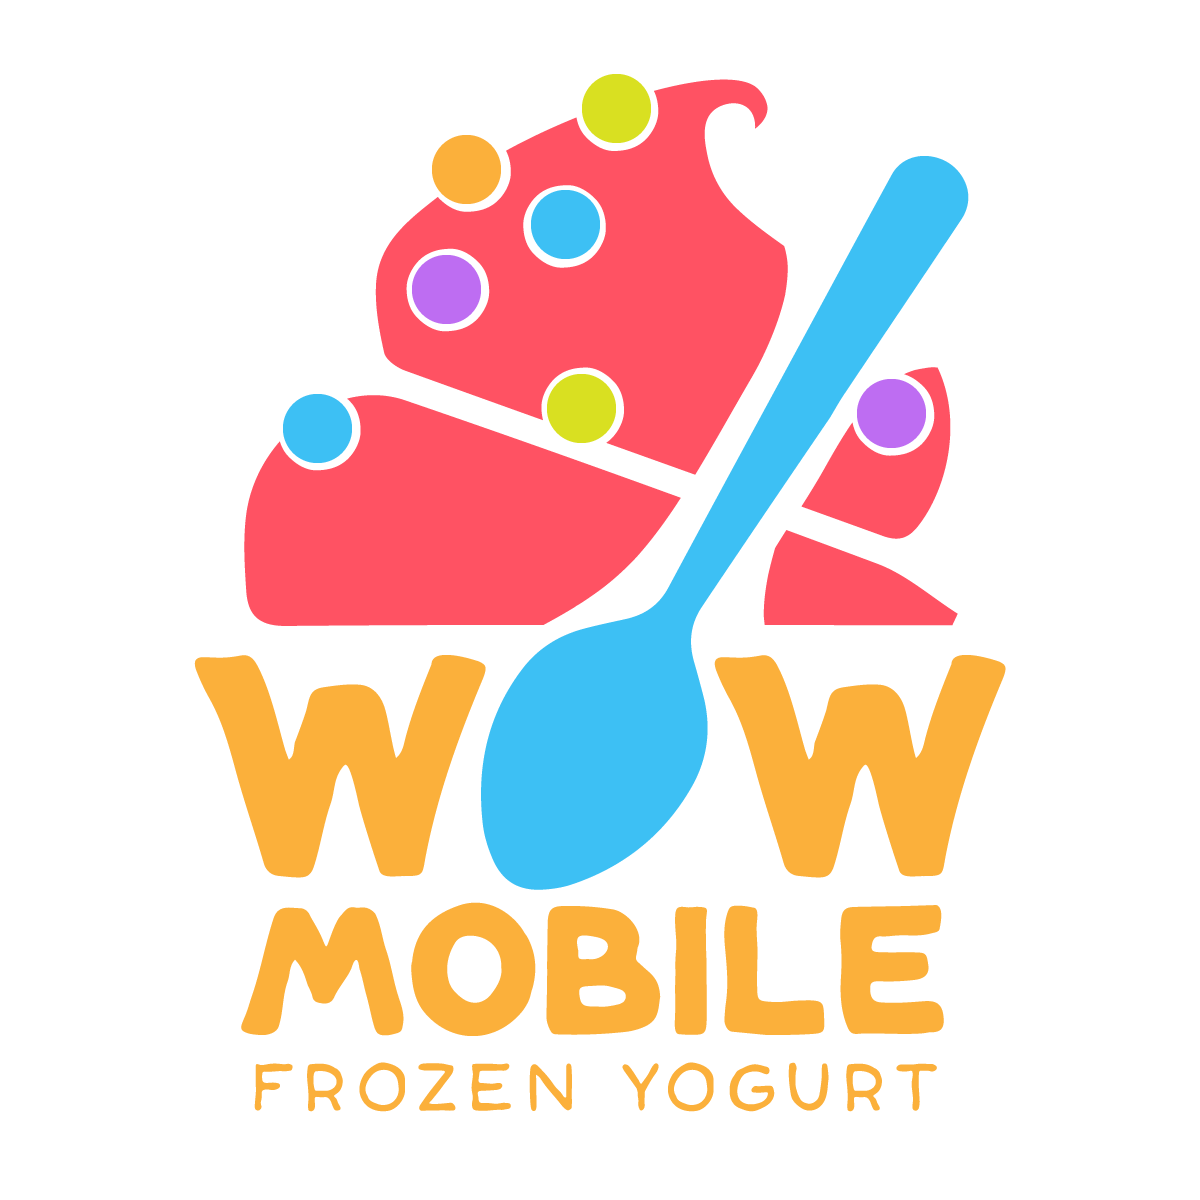 jpg black and white download Frozen yogurt clipart. Wow mobile